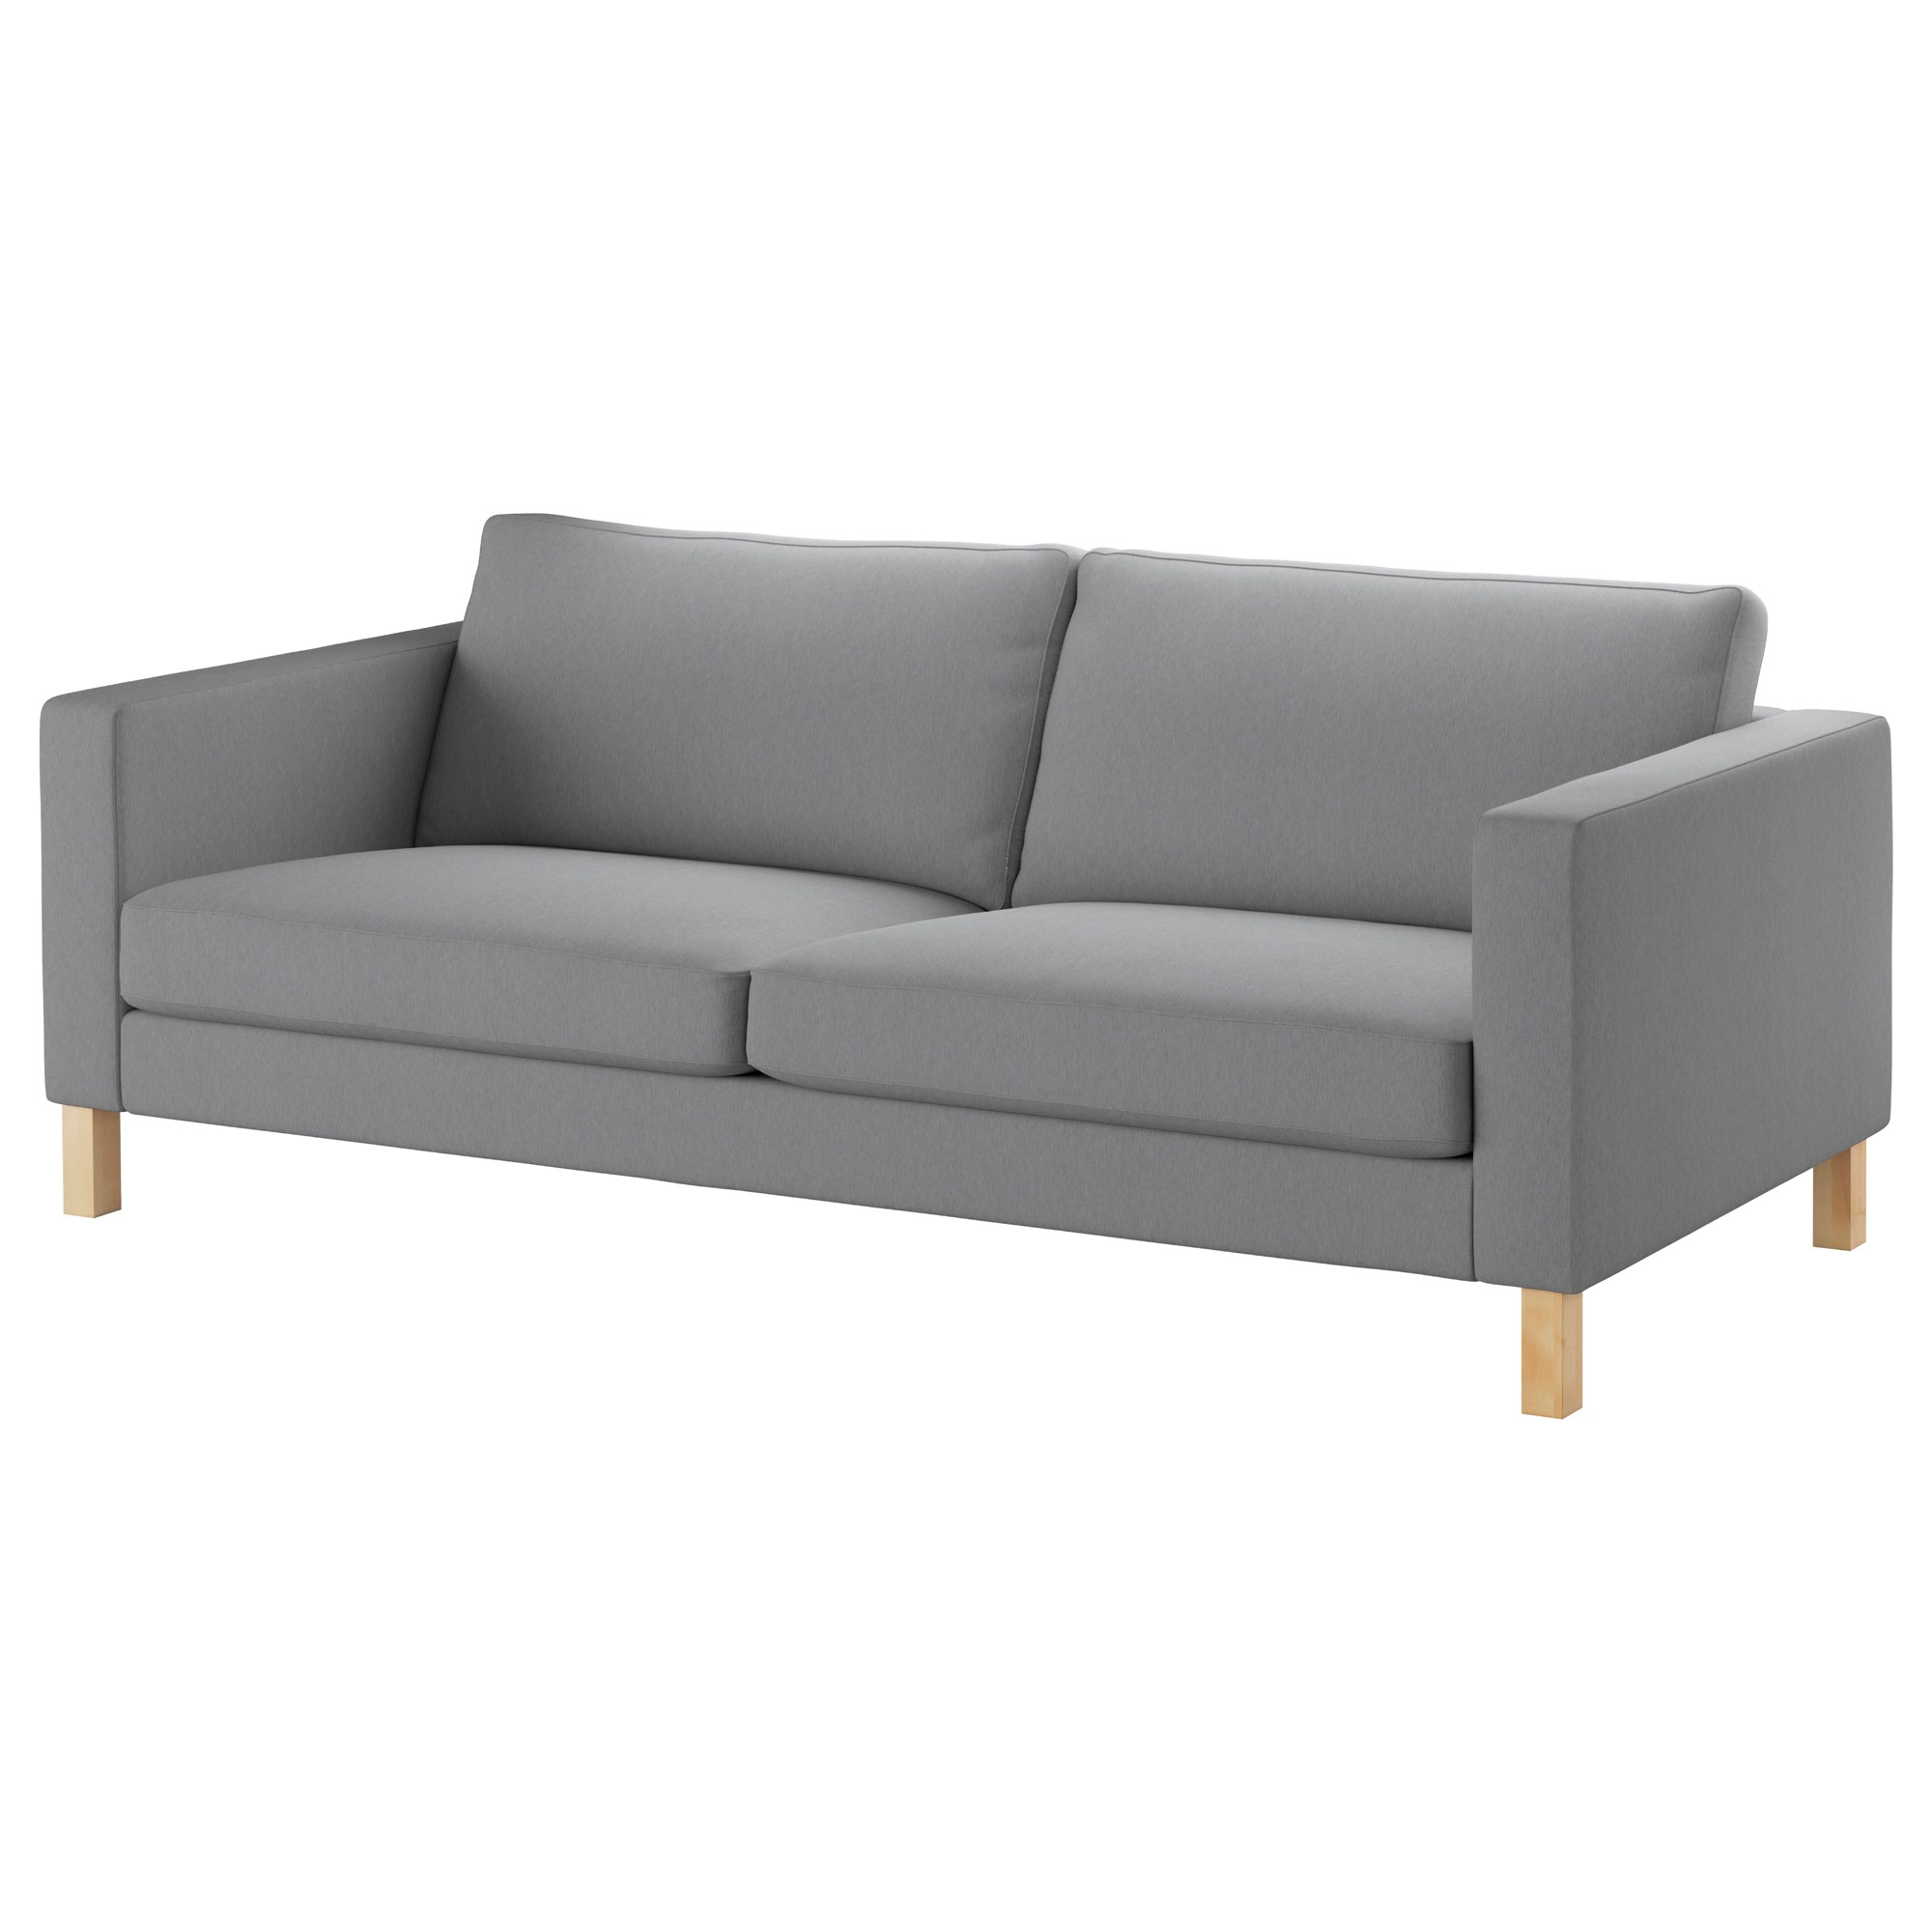 Couches In Ikea Sofa Karlstad Knisa Light Gray